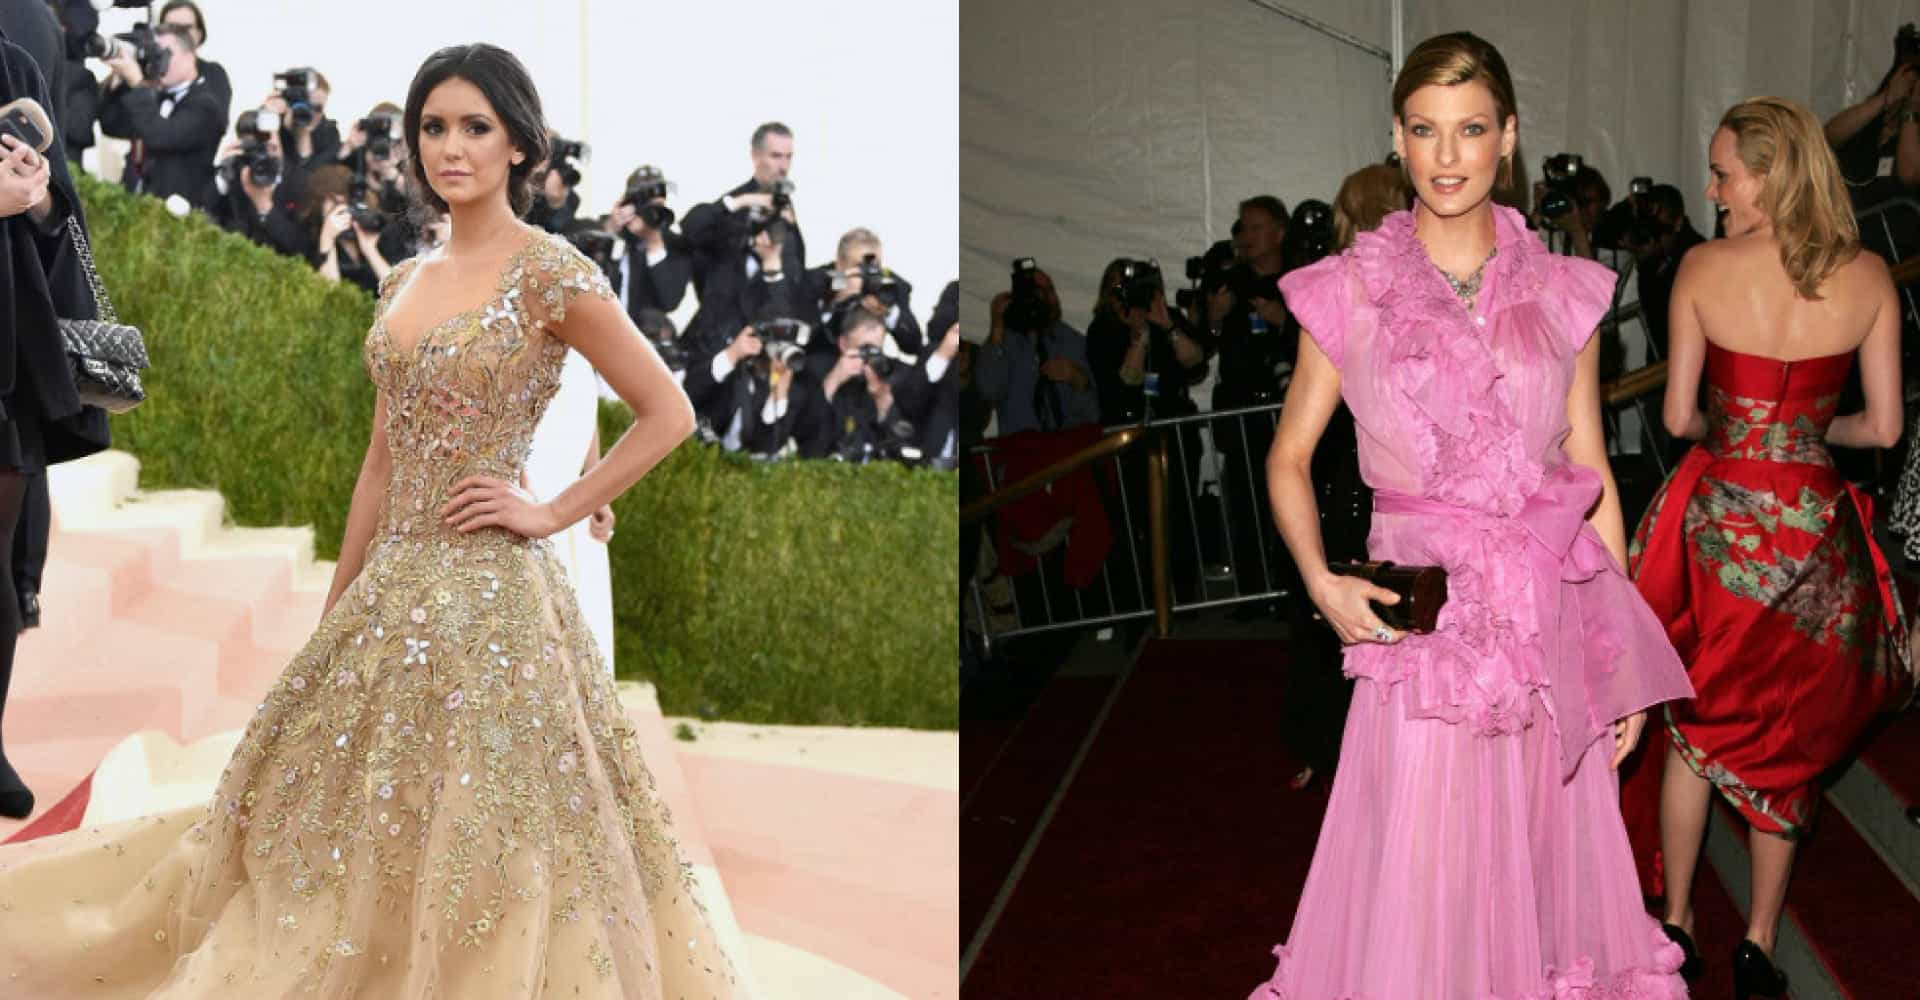 Canadians at the Met Gala: the best (and worst) looks